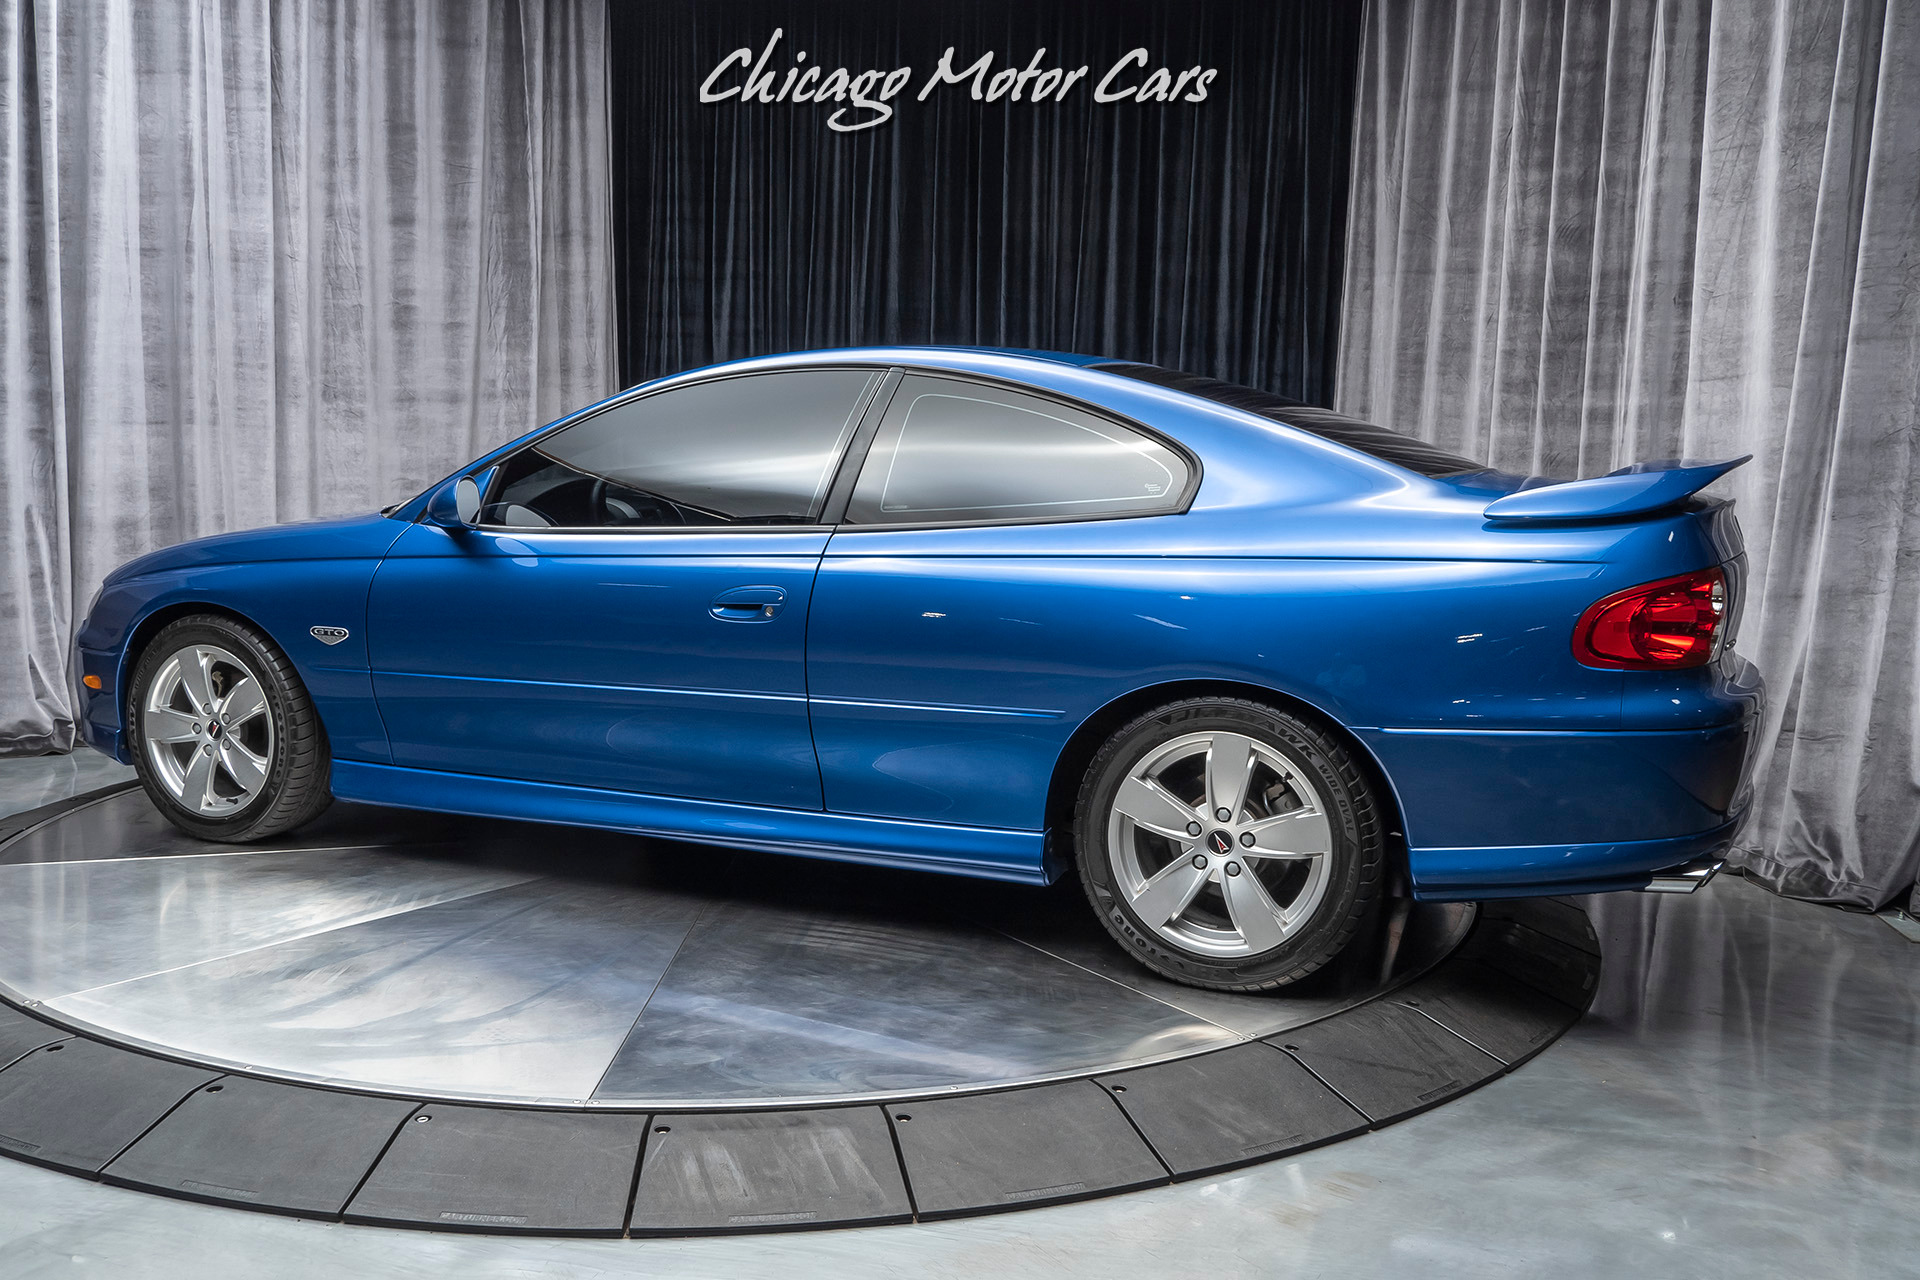 Used-2004-Pontiac-GTO-Coupe-6-SPEED-MANUAL-ONLY-11K-MILES